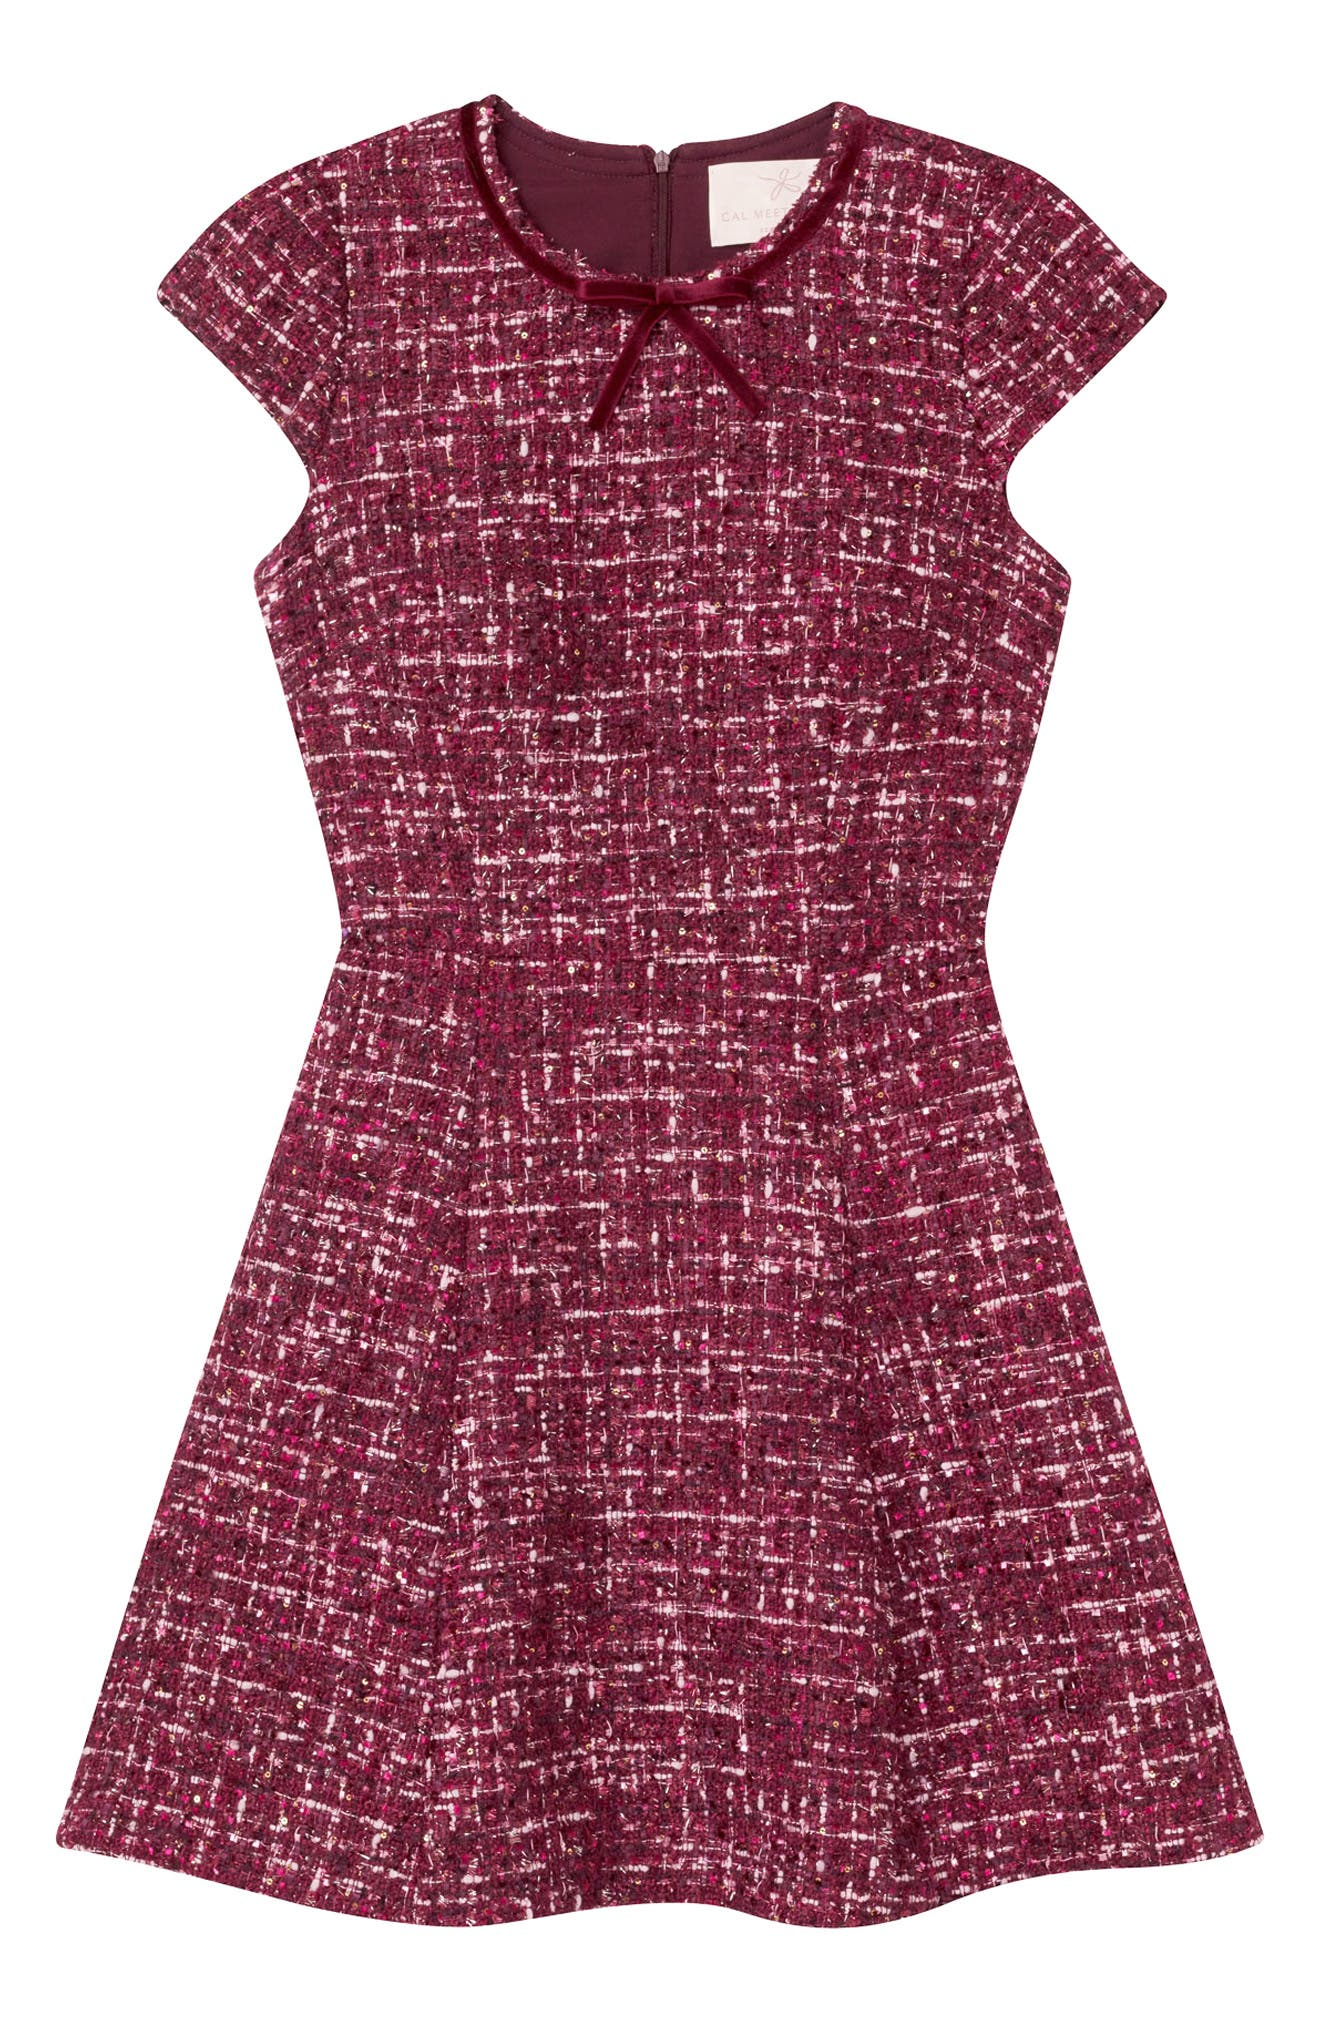 GAL MEETS GLAM COLLECTION, Nell Bouclé Dreams Tweed Fit & Flare Dress, Alternate thumbnail 5, color, 650